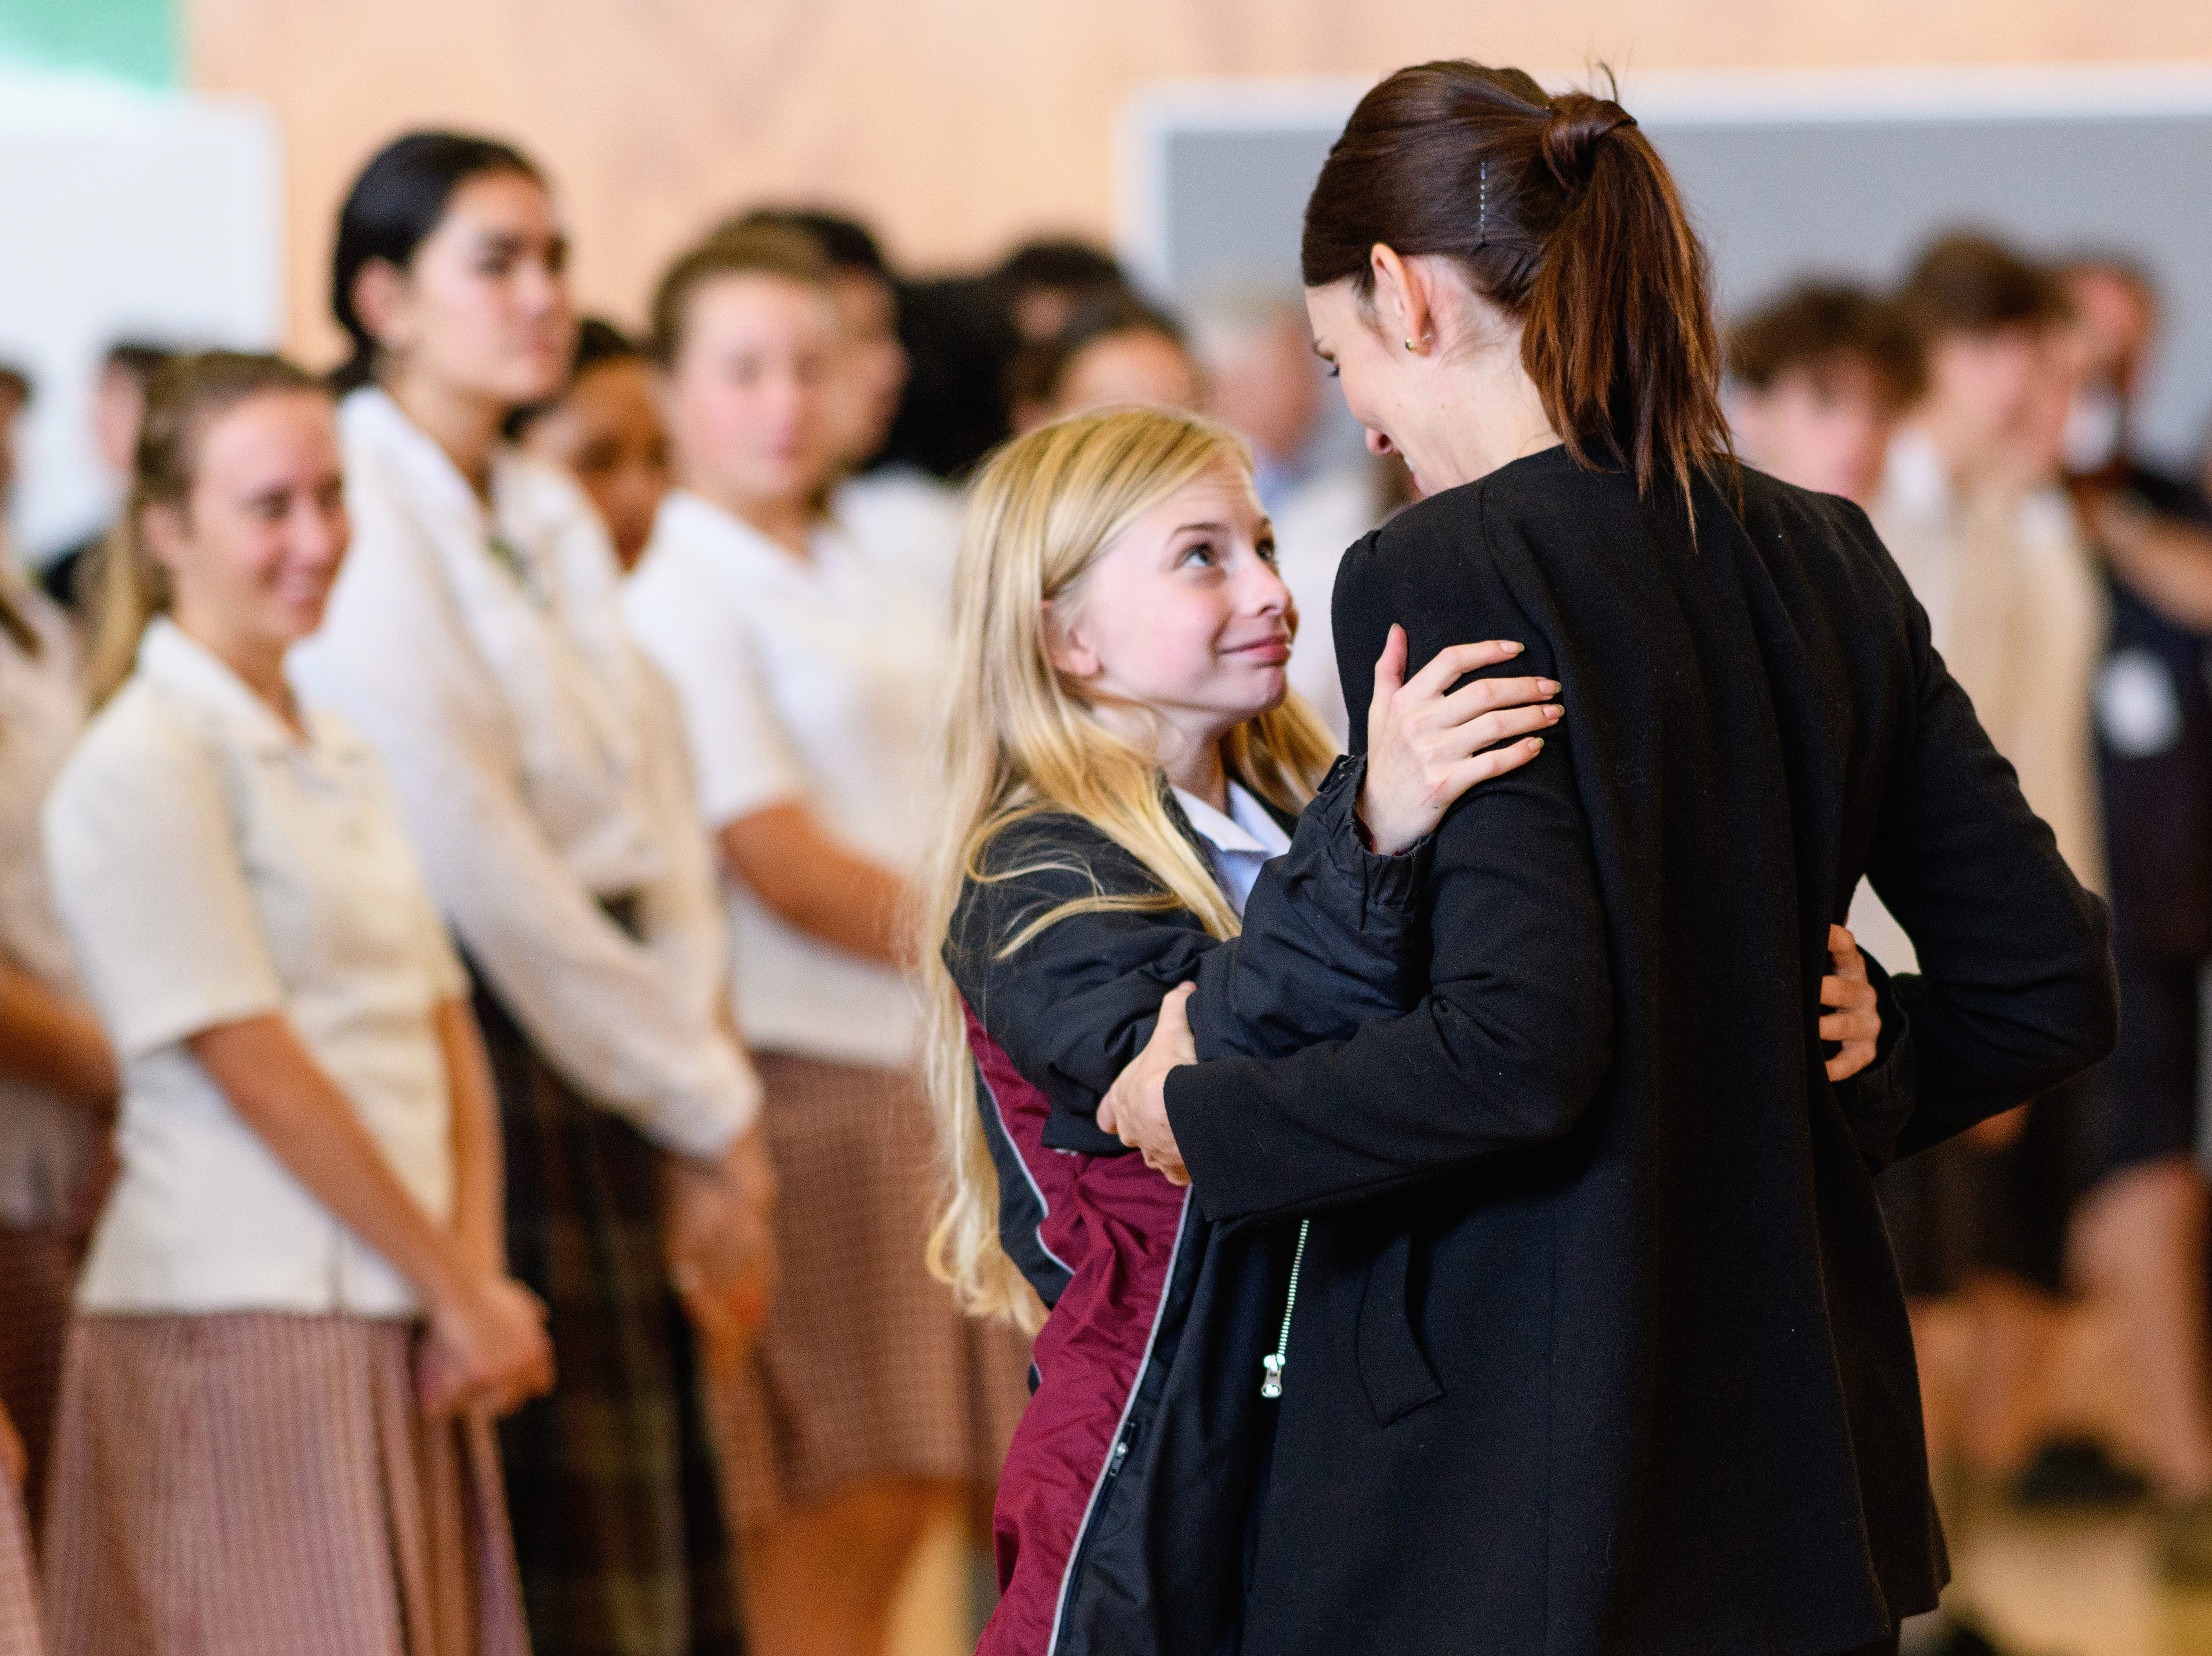 New Zealand Prime Minister Jacinda Ardern receives a hug from a student during her visit to Cashmere High School which lost two students during a mass shooting on March 20, 2019 in Christchurch, New Zealand.